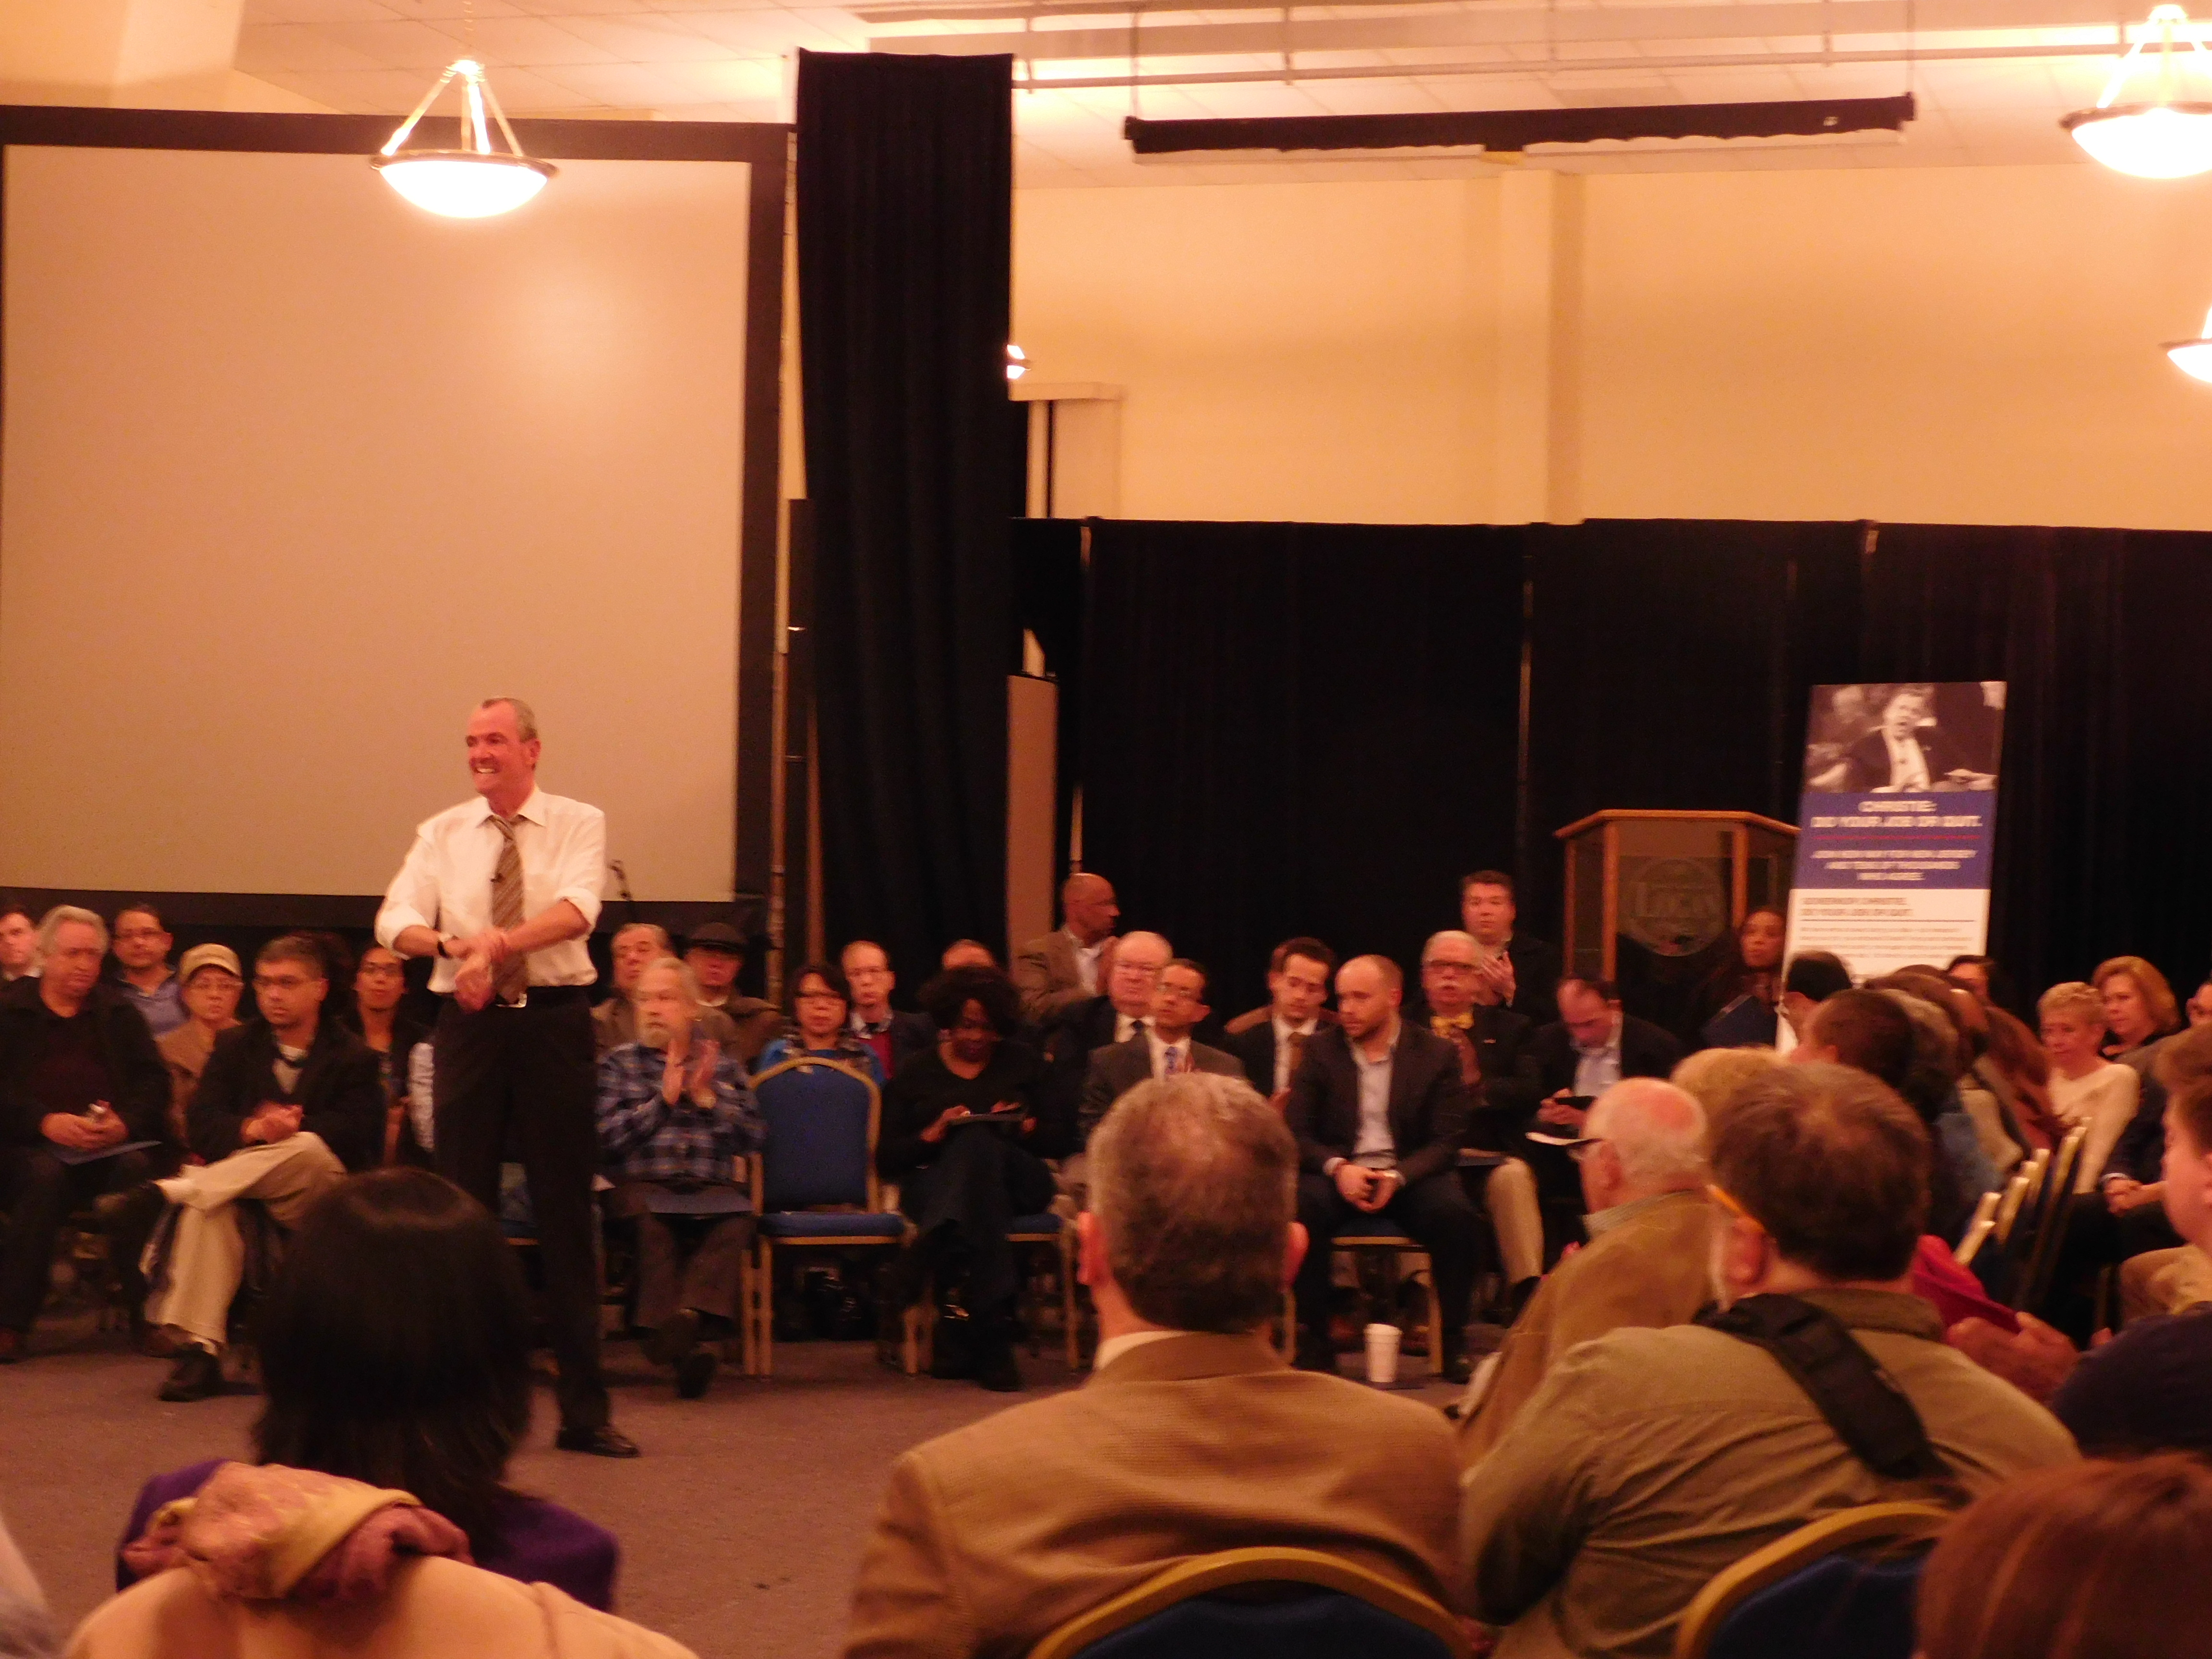 Murphy speaks to the crowd at a town hall event.